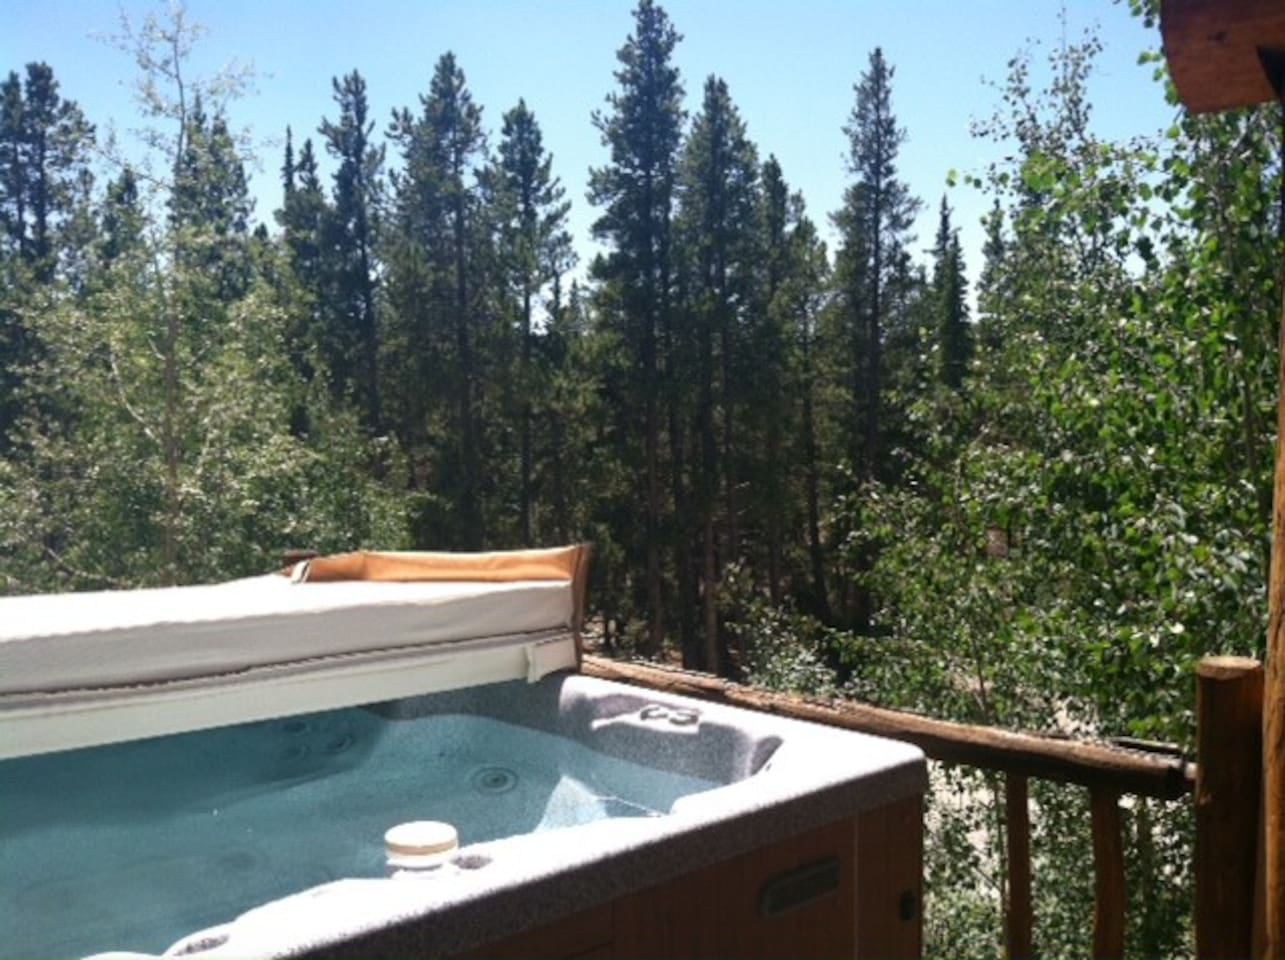 View from hot tub on open deck facing national forest